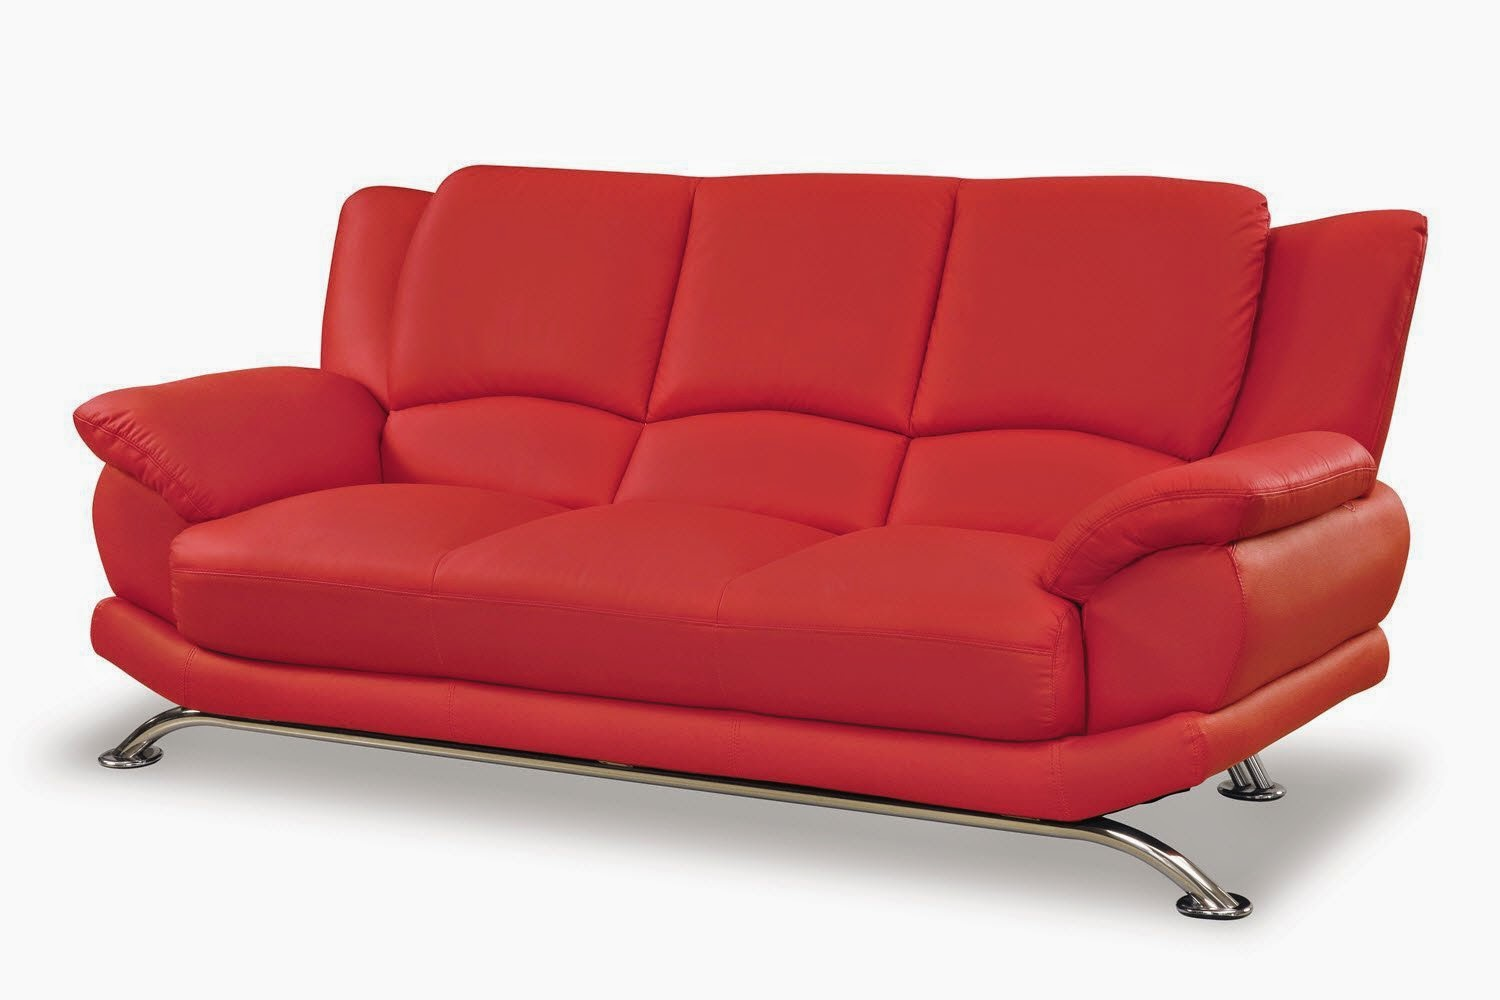 leather red sofa clearance ireland